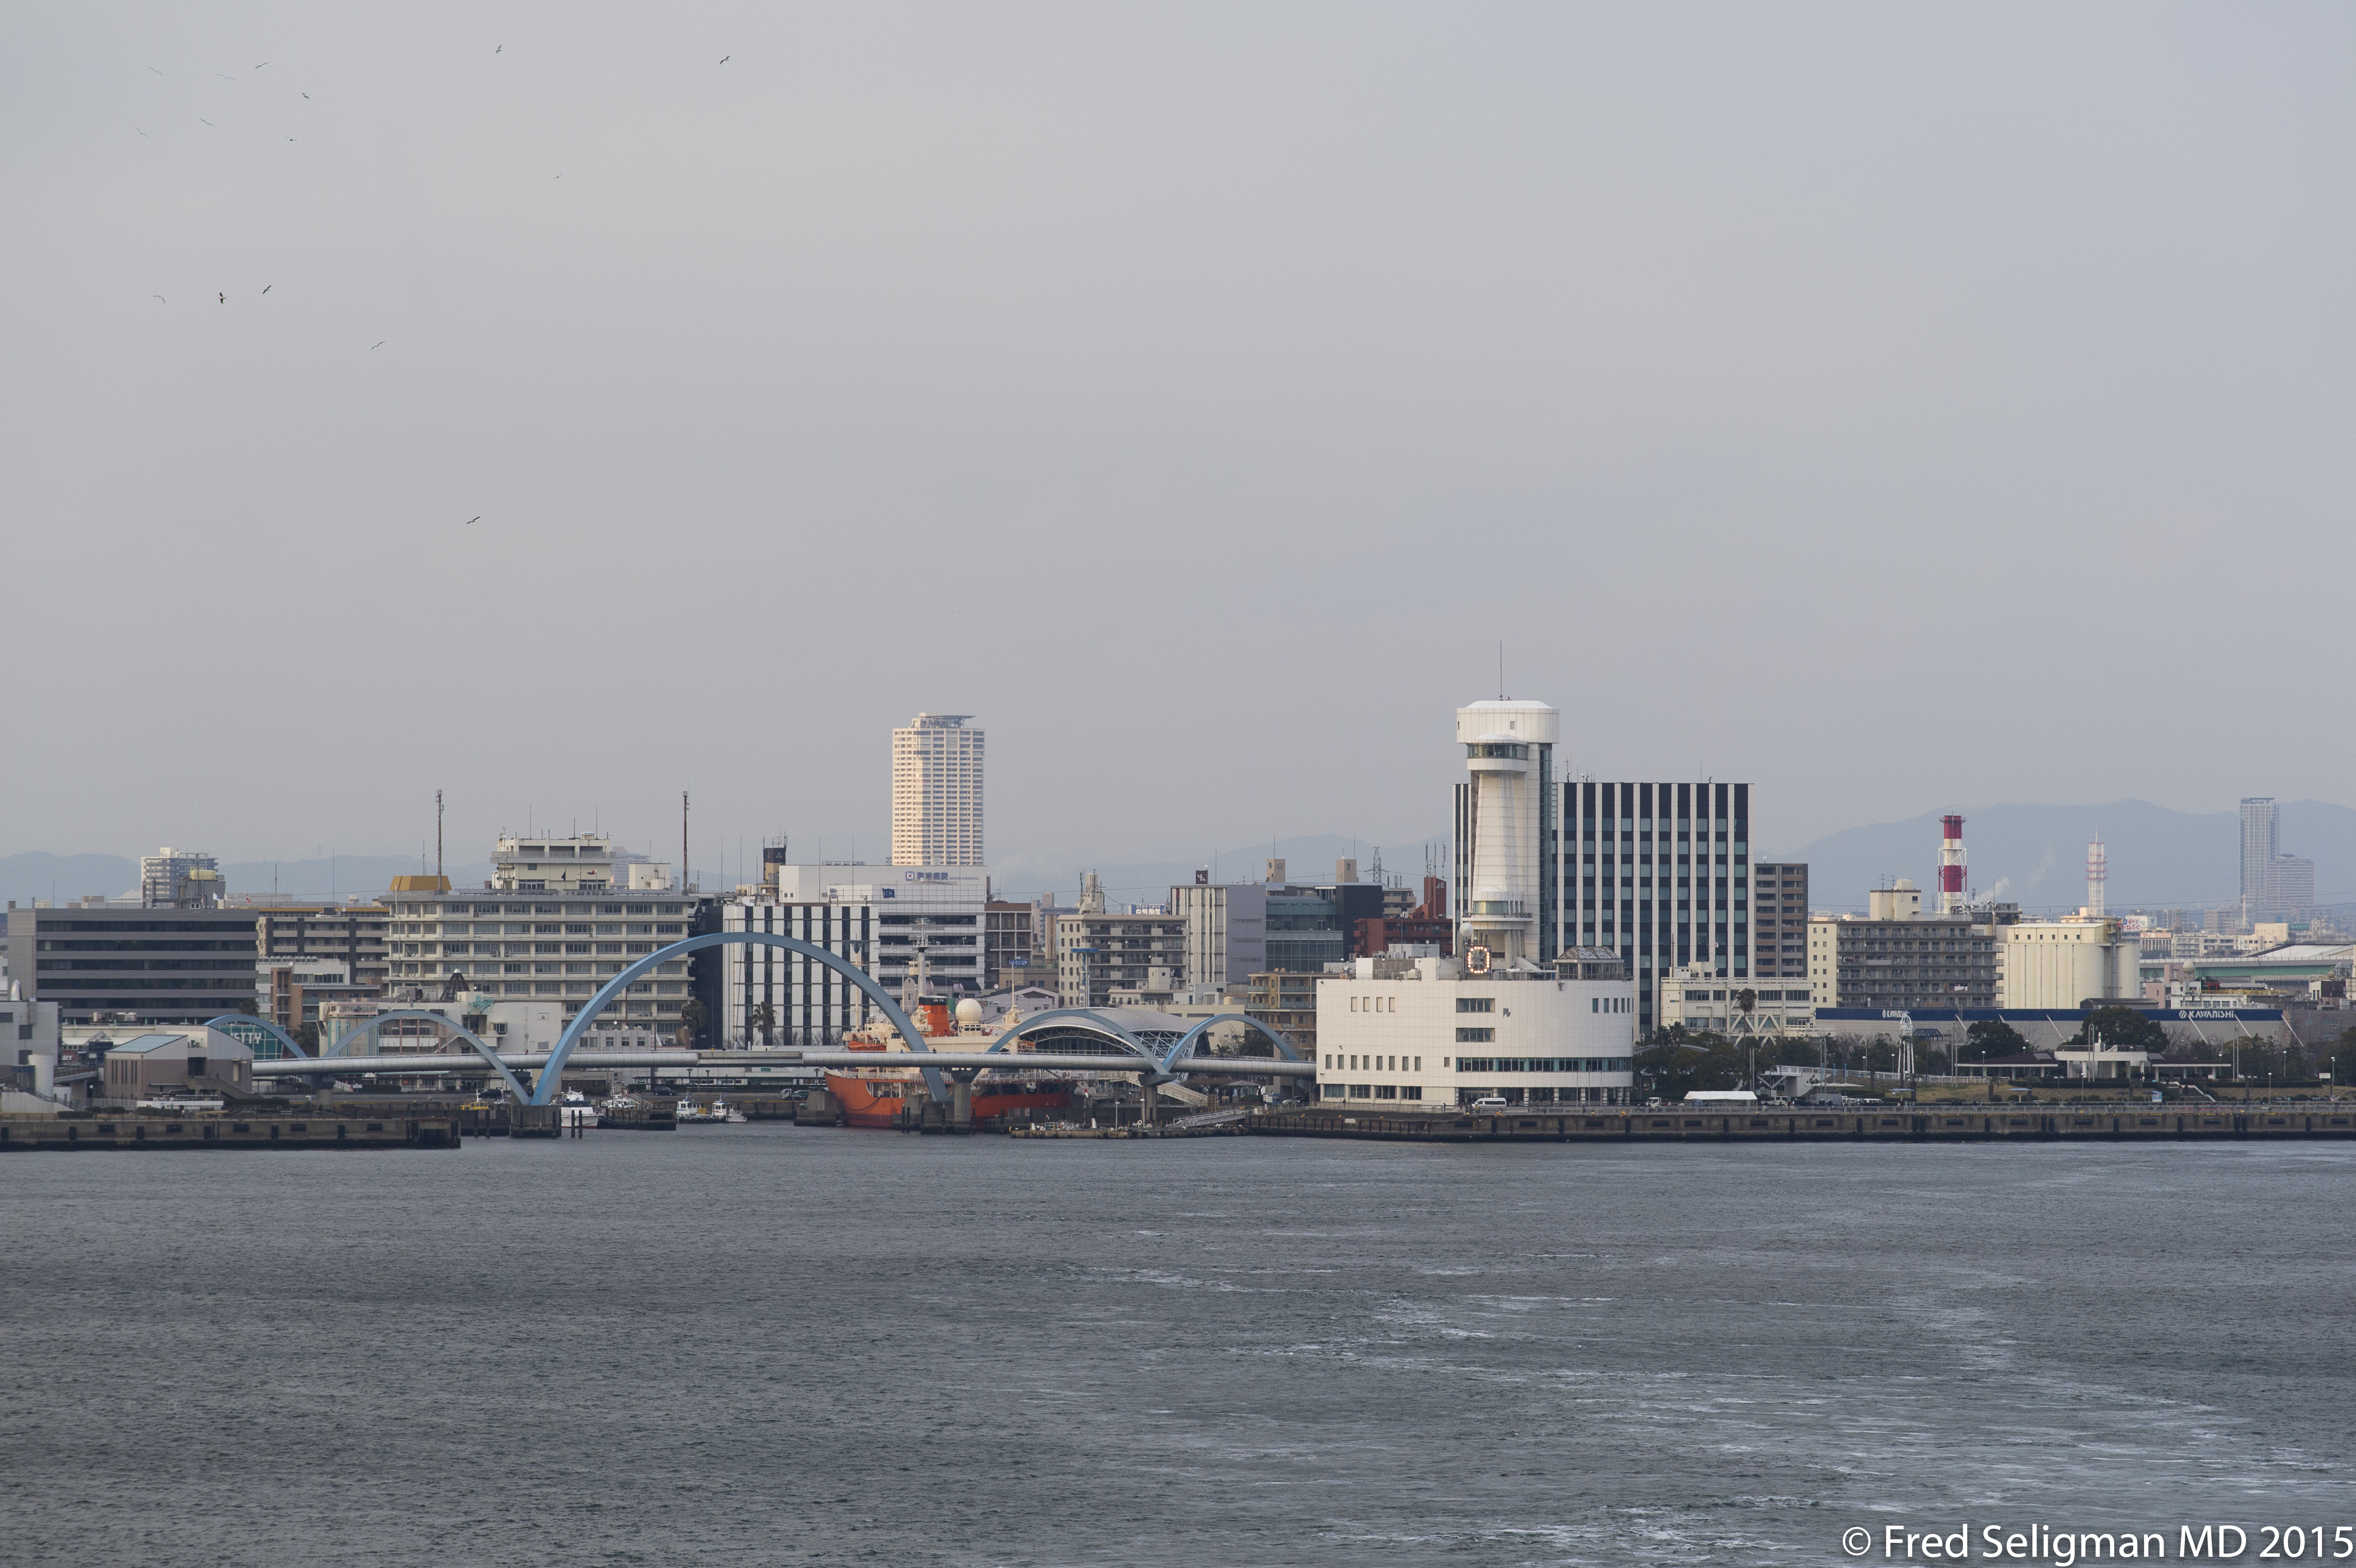 20150312_090124 D3S.jpg - Nagoya from harbor